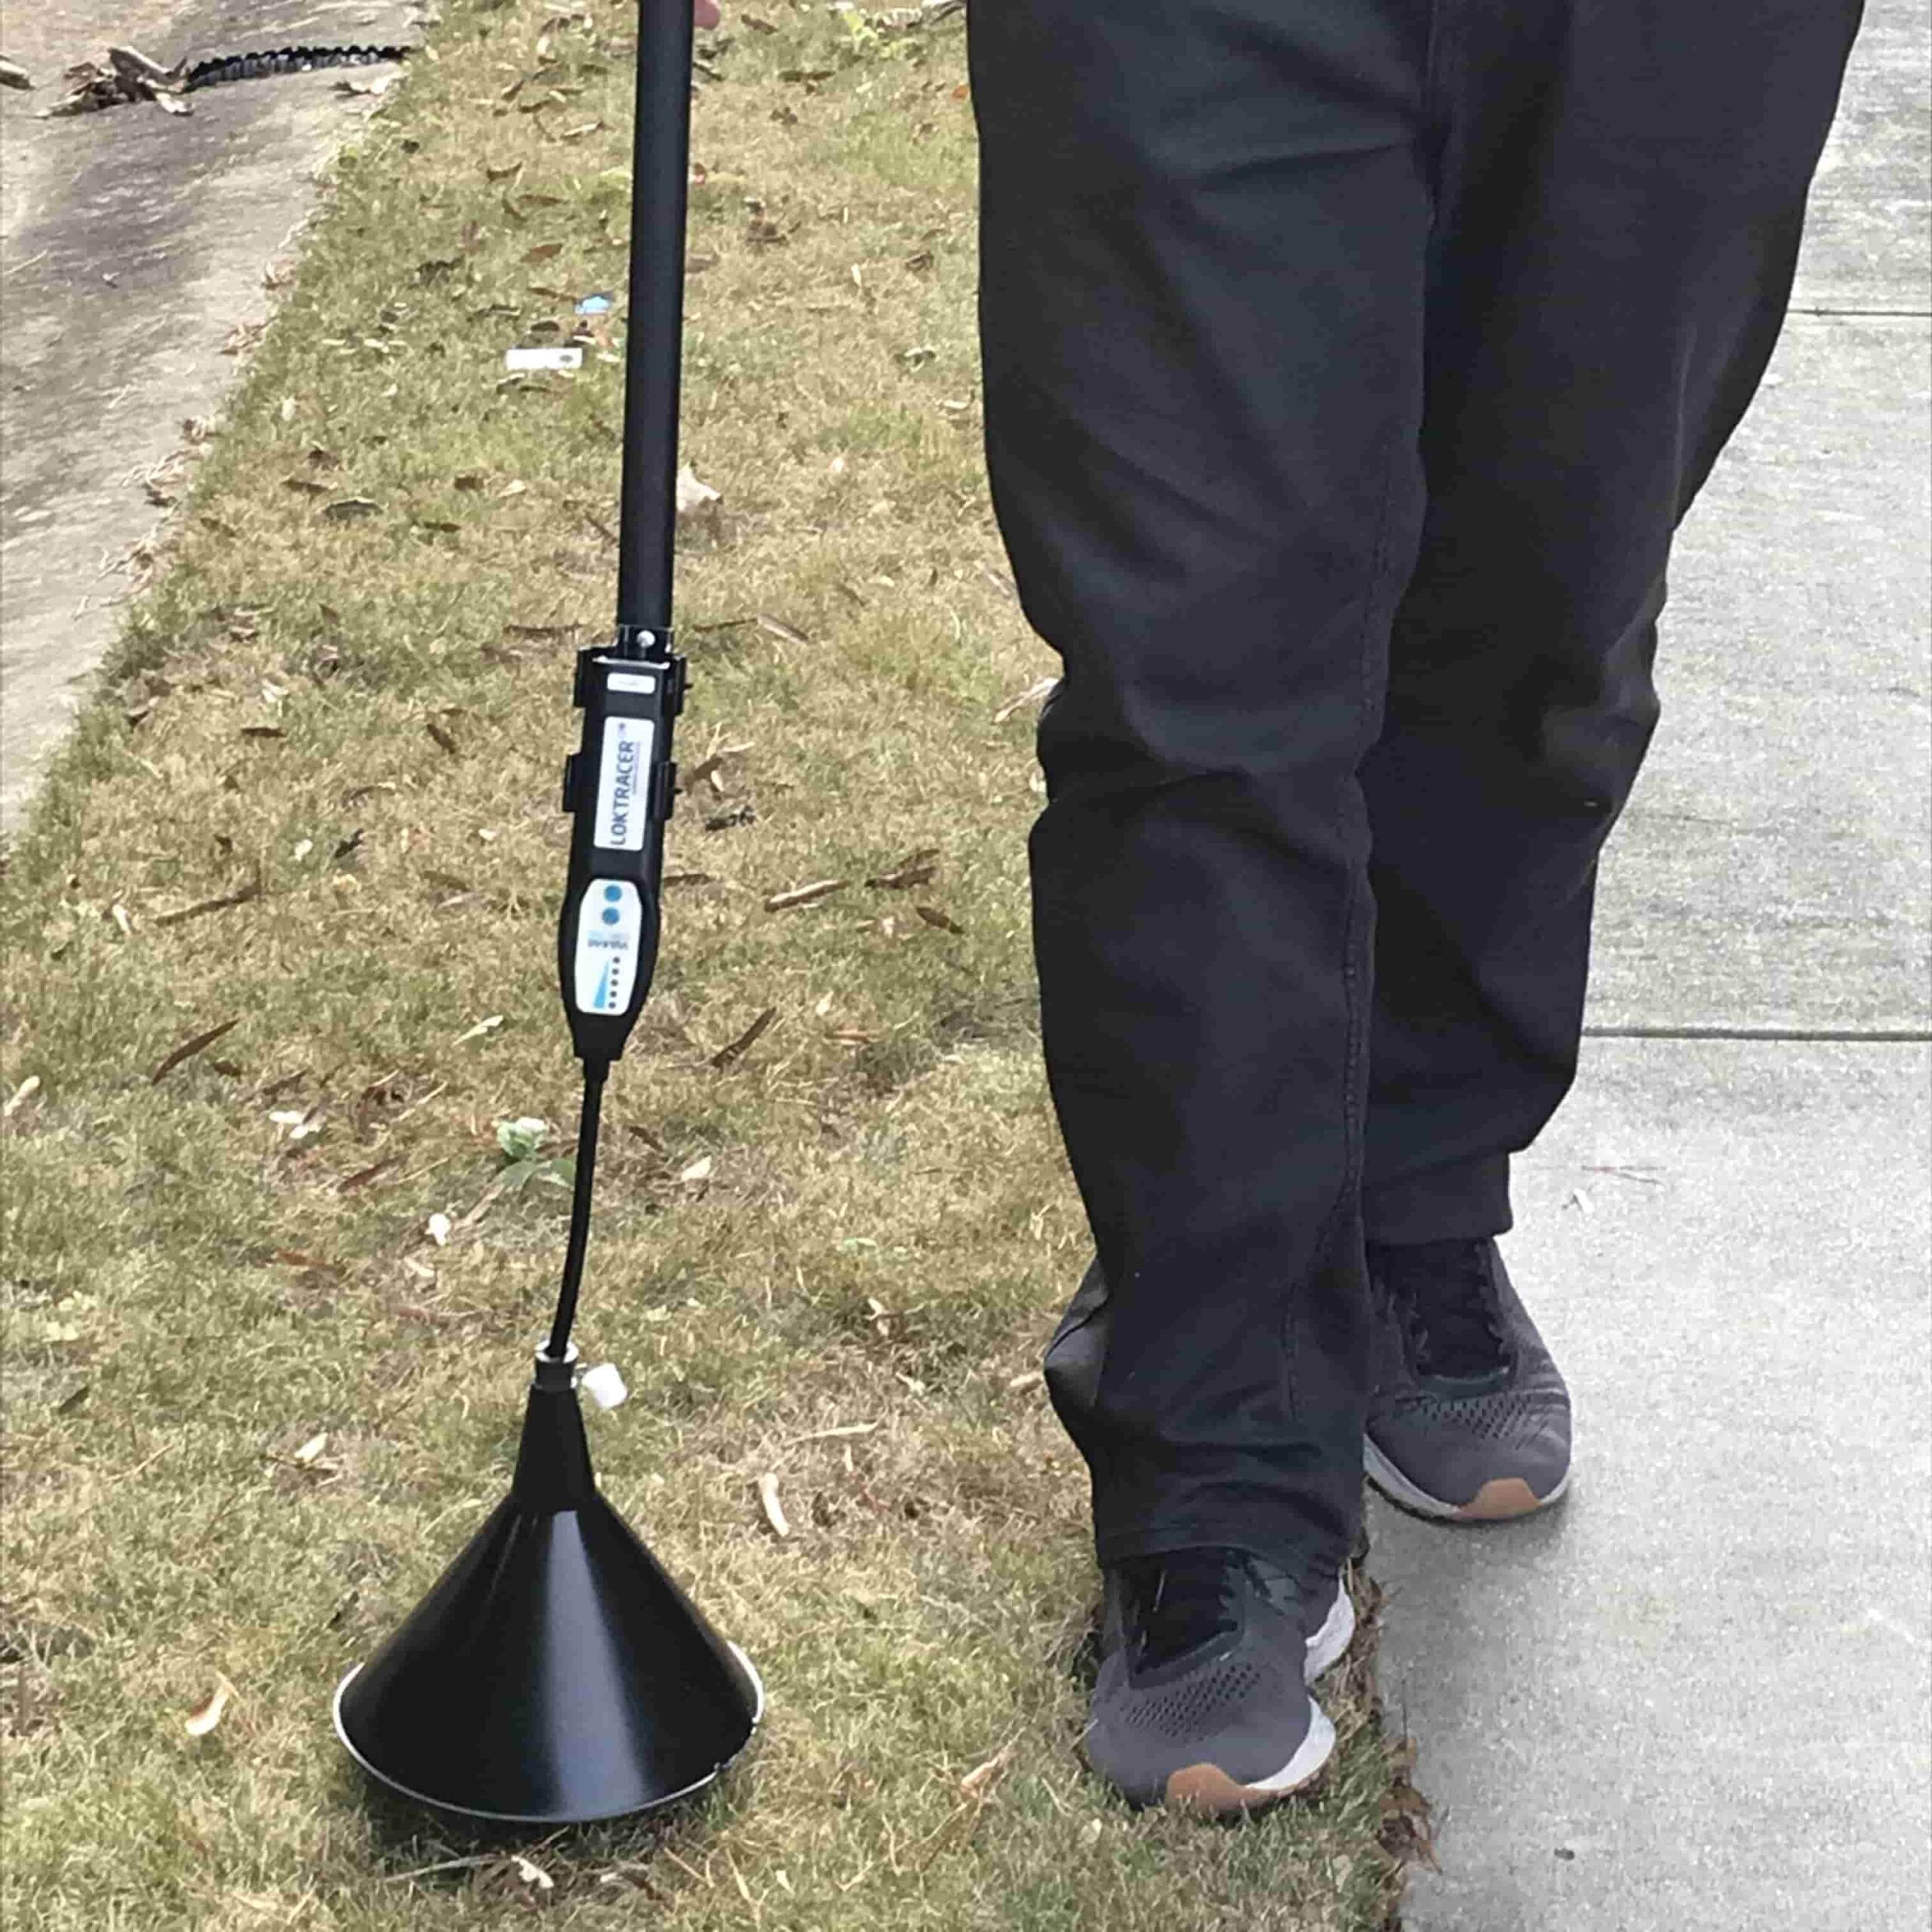 subsurface water line leak detection for underground pipe leaks